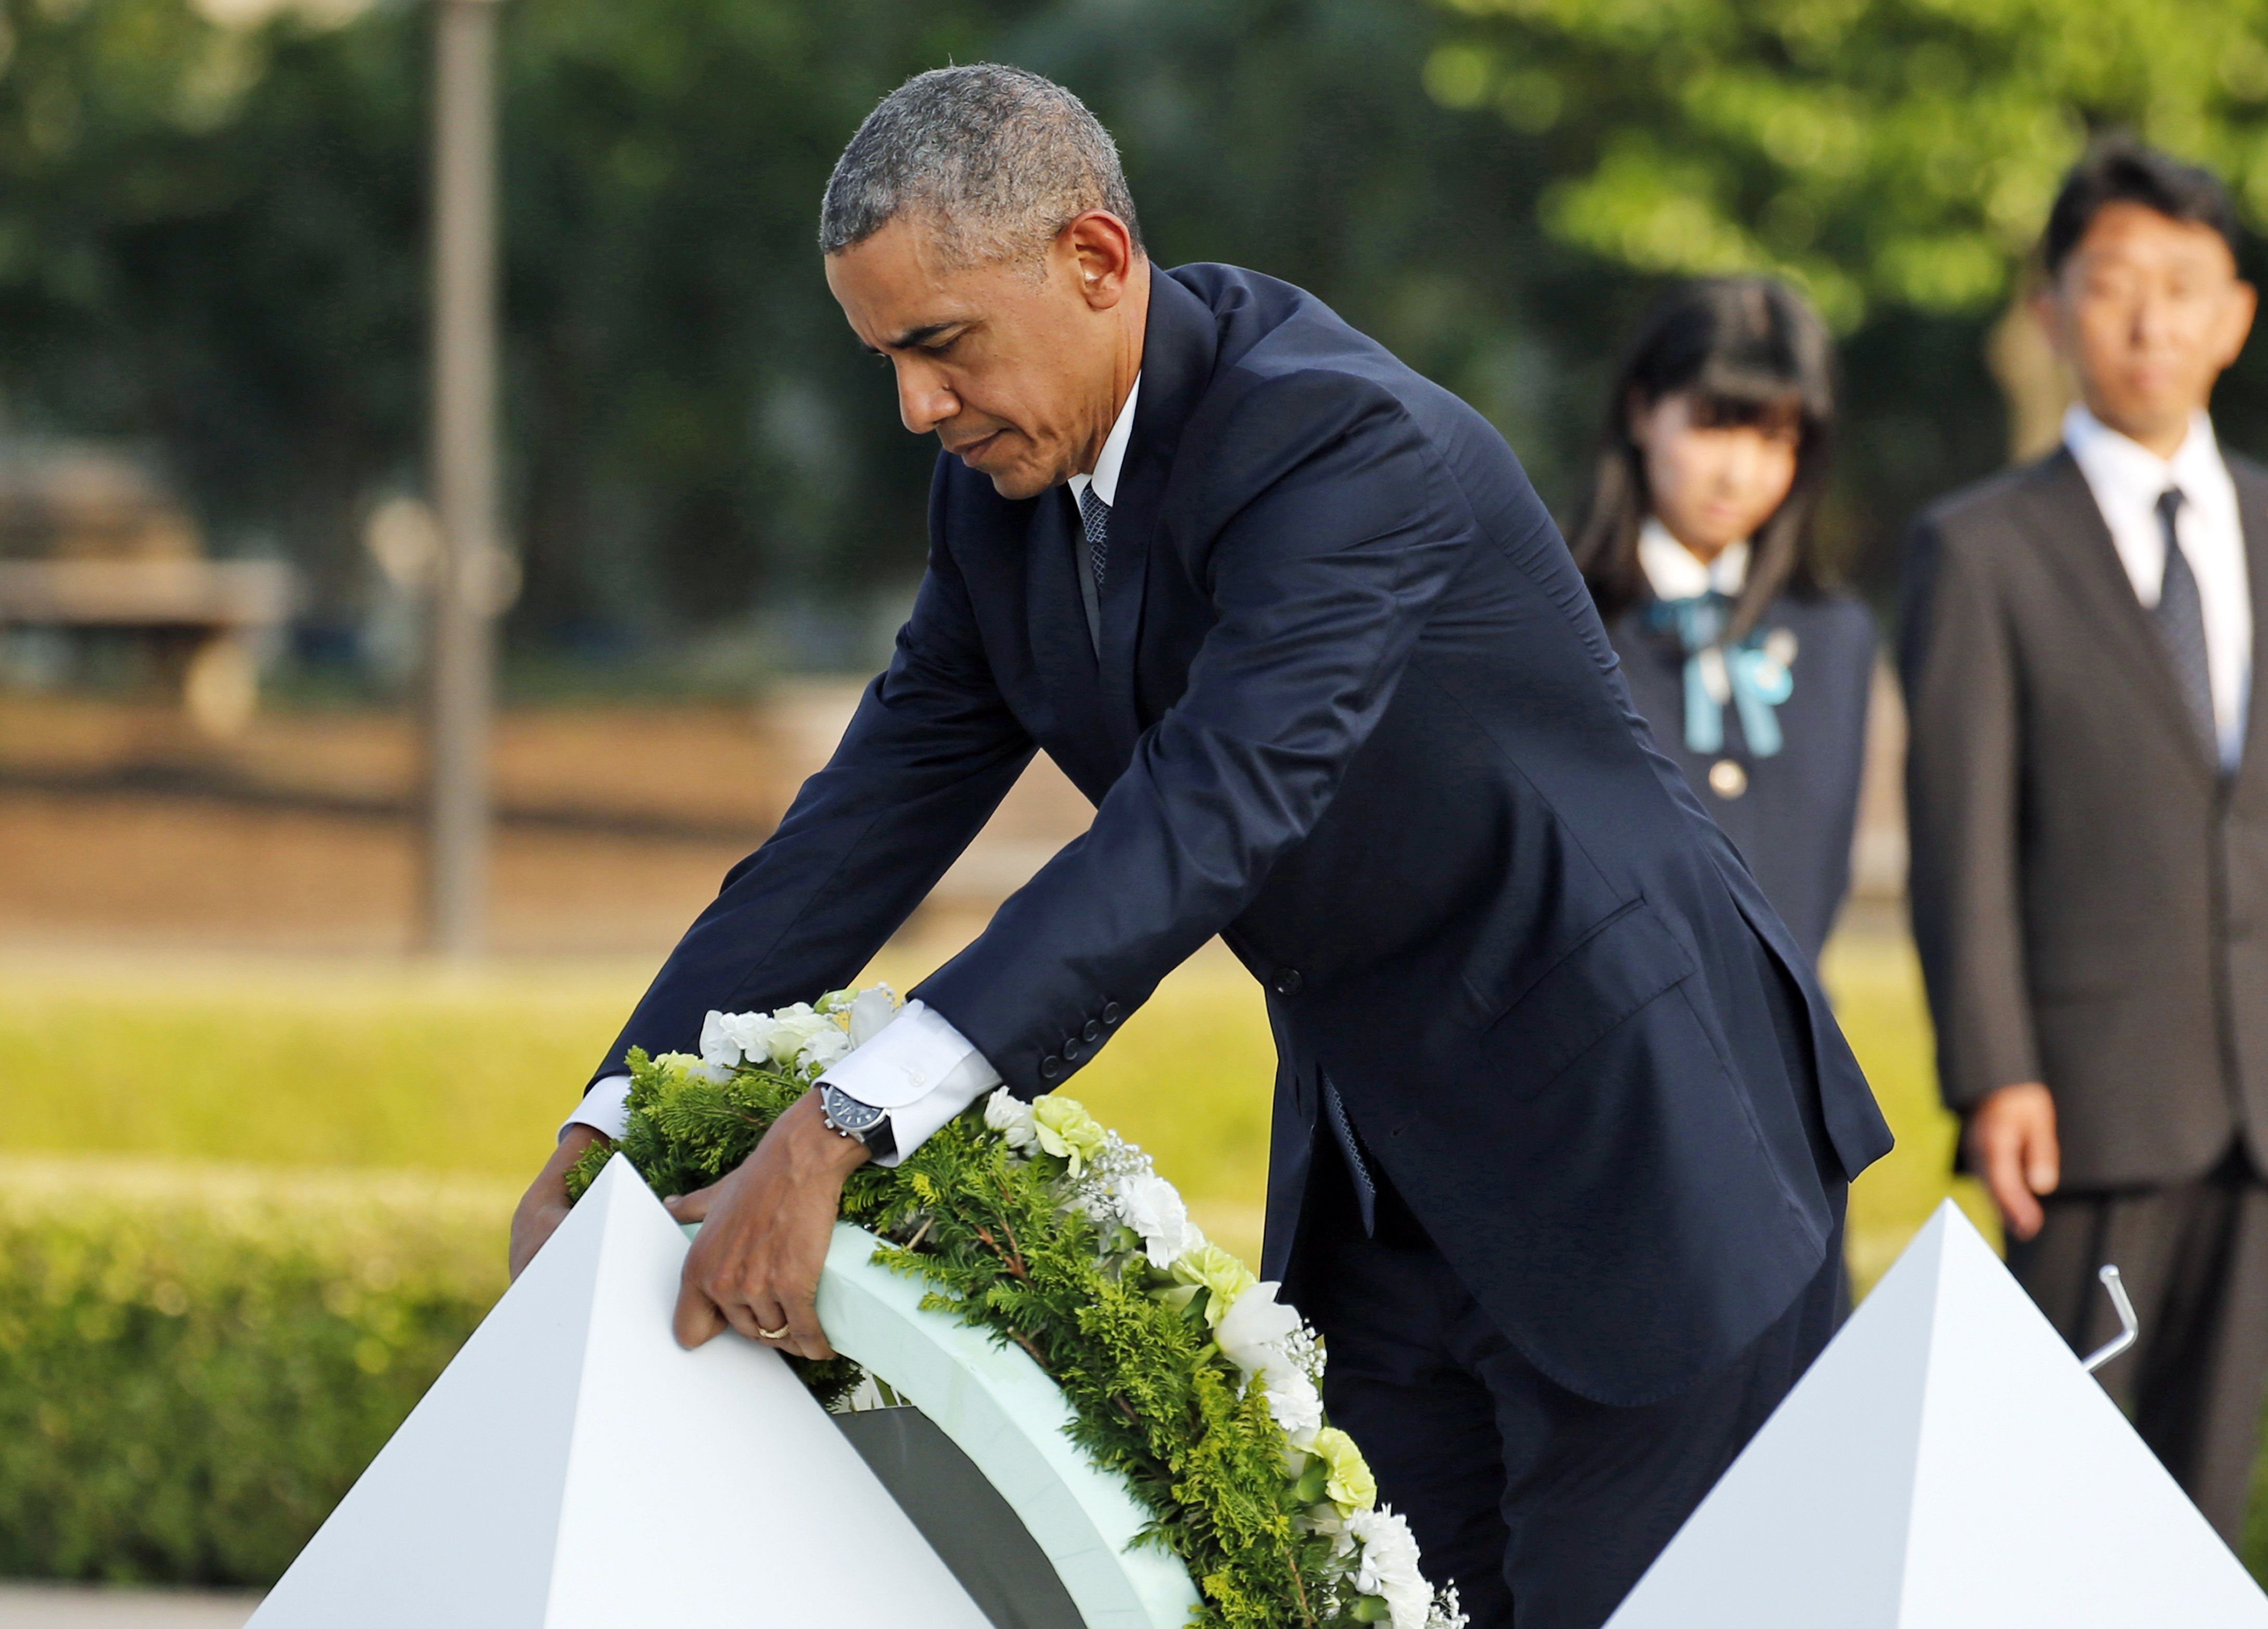 U.S. President Barack Obama lays wreaths at the cenotaph at Hiroshima Peace Memorial Park in Hiroshima, western Japan, Friday, May 27, 2016.